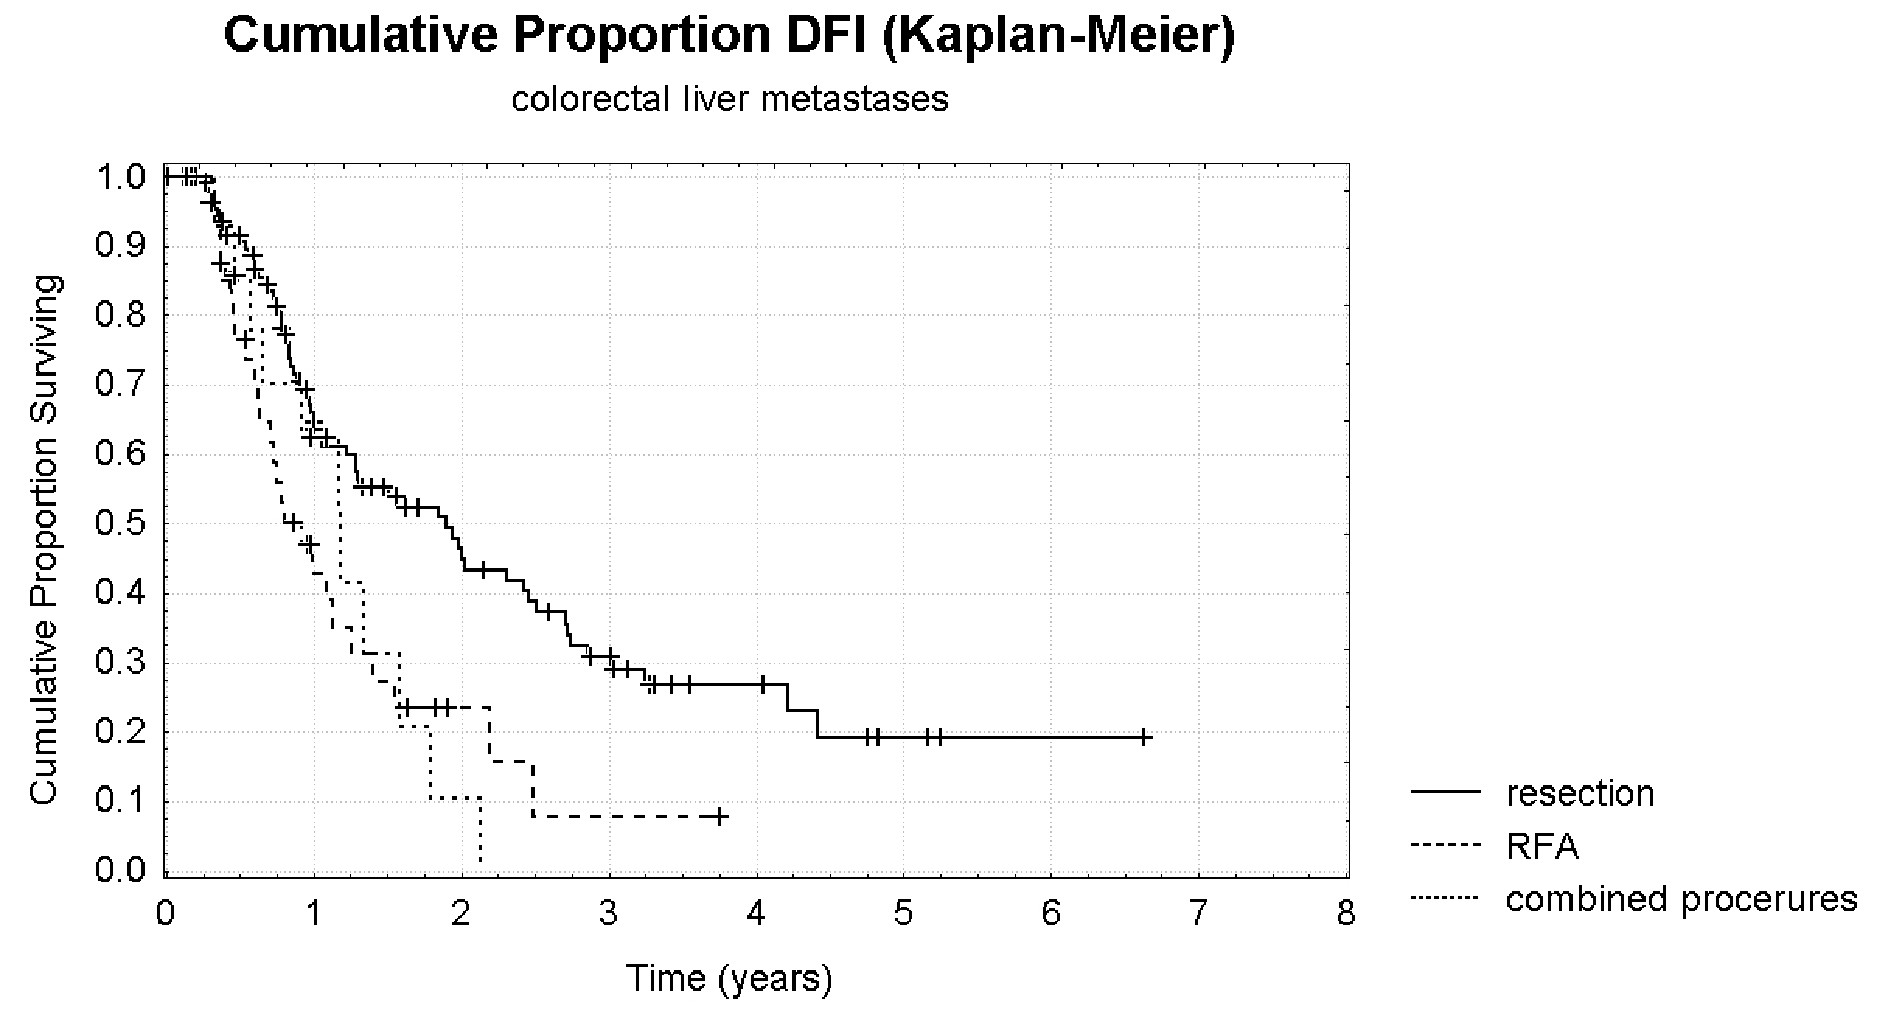 DFI po resekcích, RFA a kombinovaných výkonech pro JMKRK